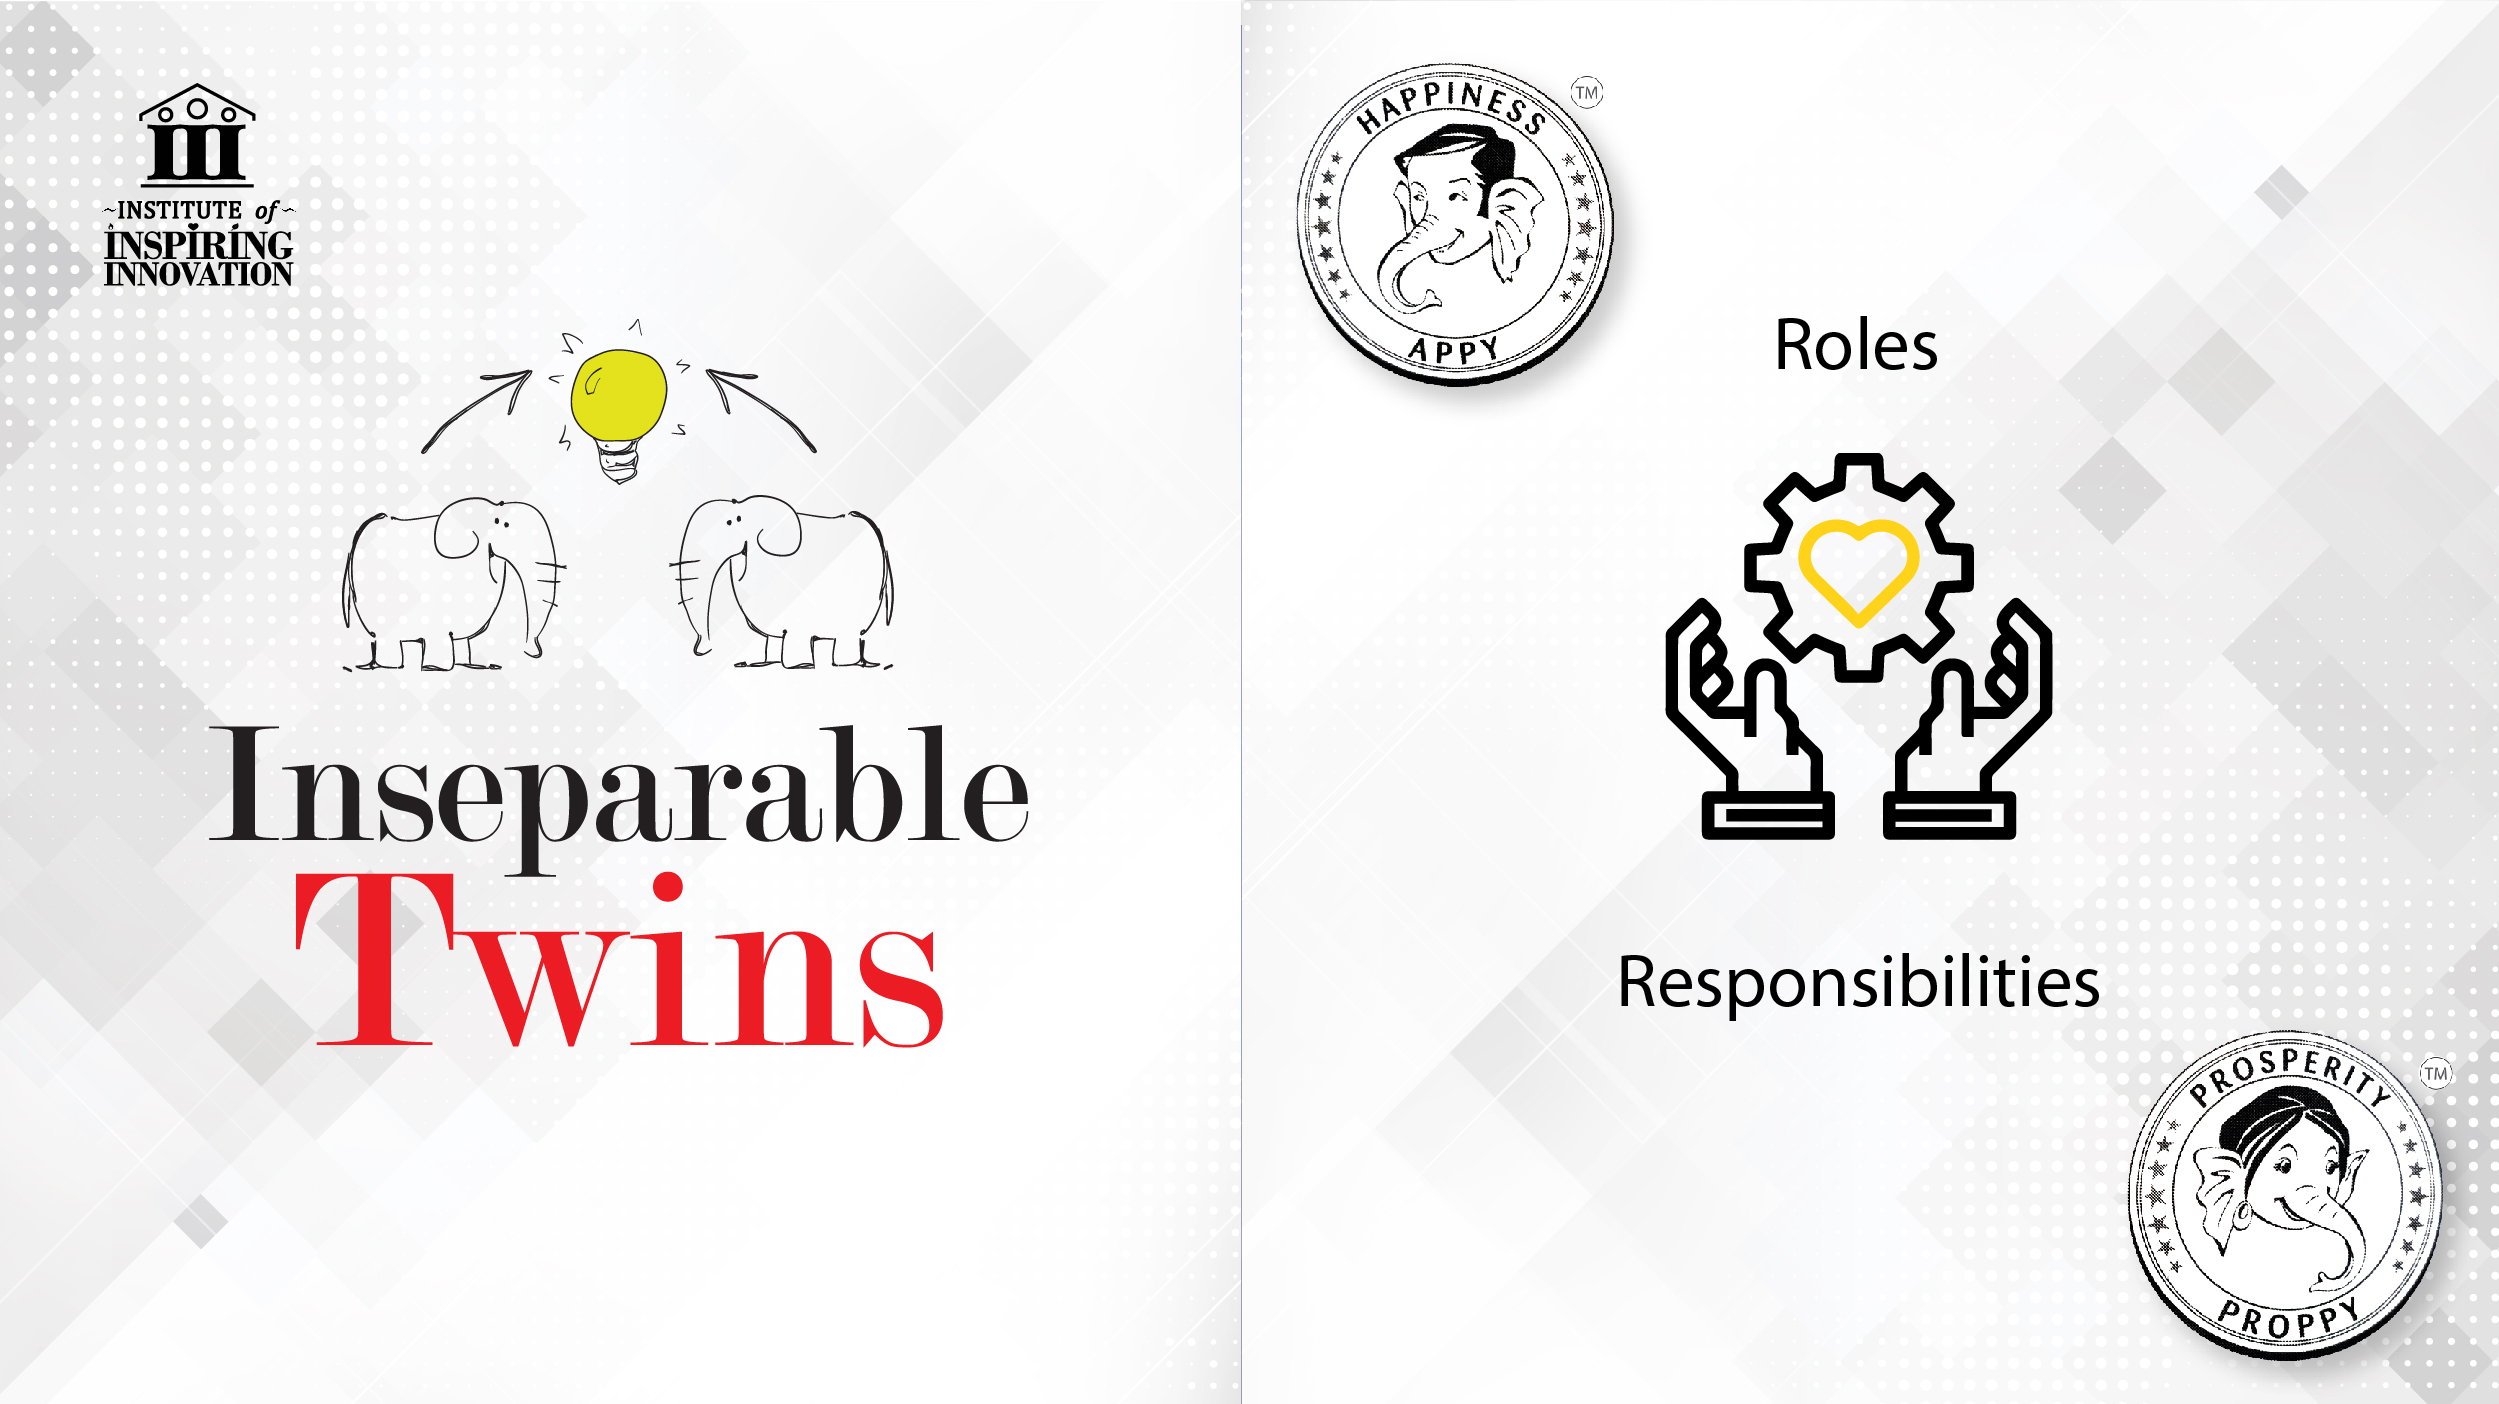 Roles & Responsibilities as Inseparable Twins by Naveen Lakkur